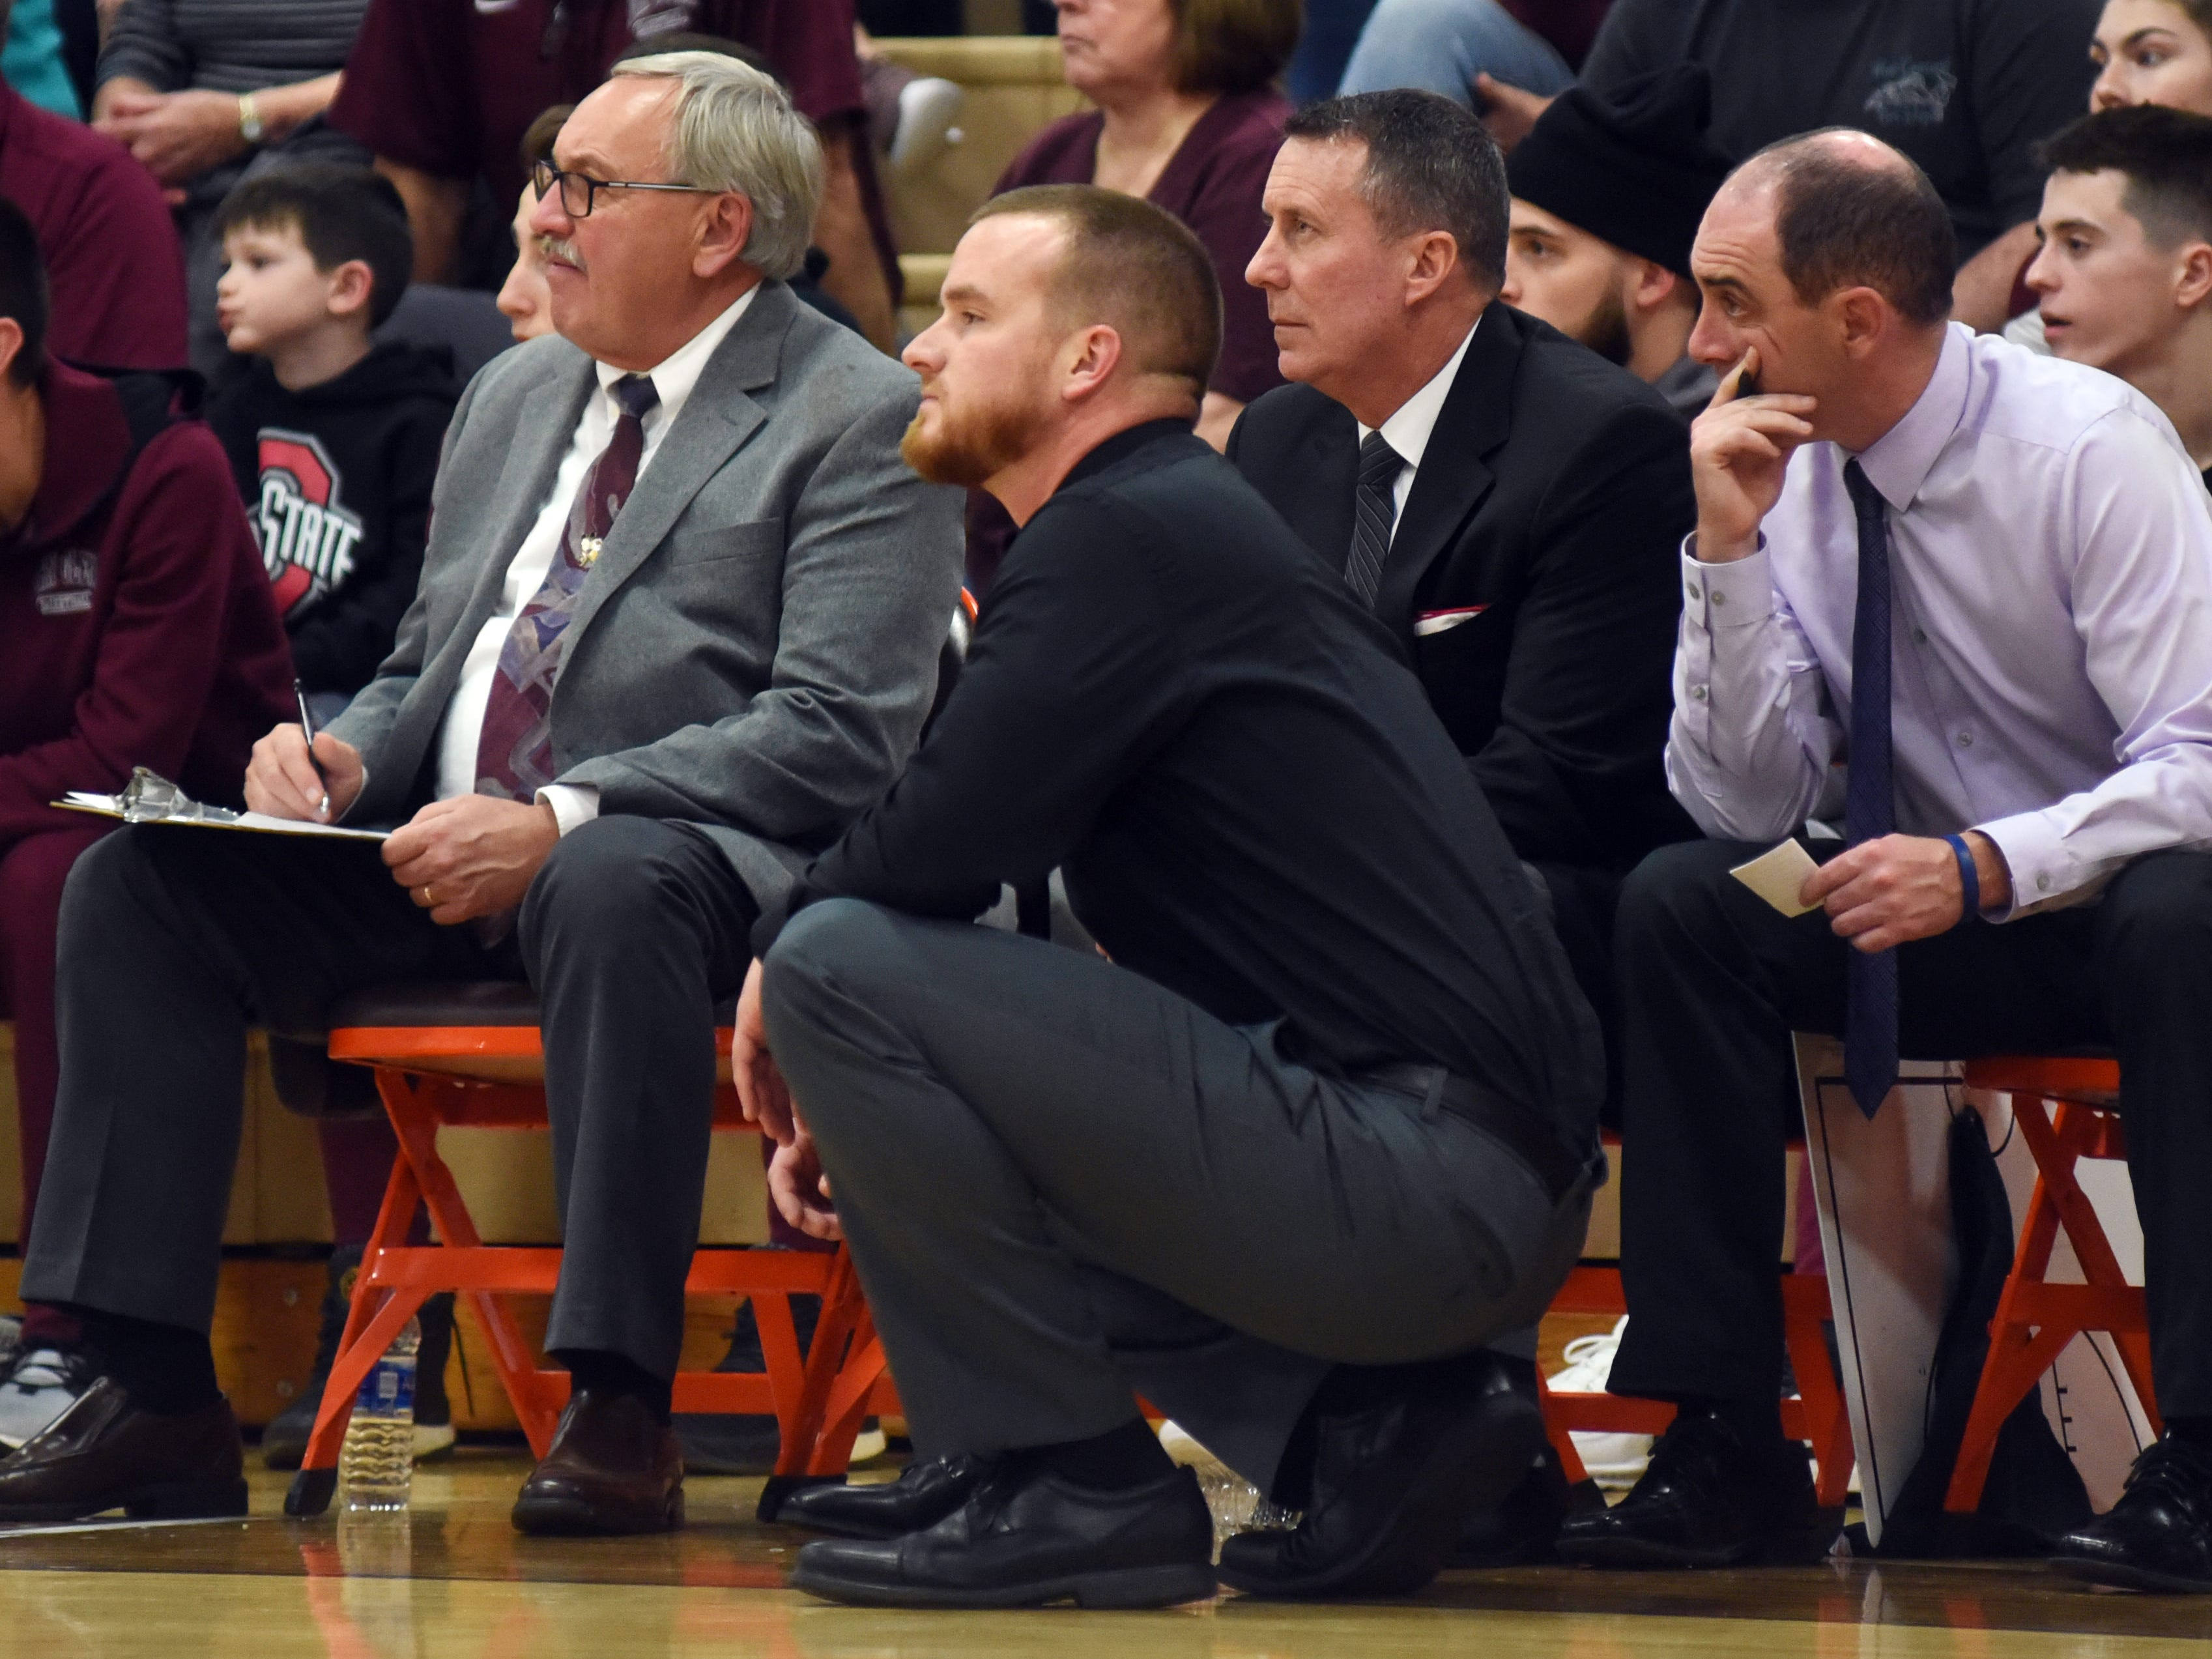 John Glenn coaches Paul Earich, left, T.J, Mitchell, Jeff Rinkes and Chad Orecchio watch the action against Meadowbrook on Friday night in Byesville.